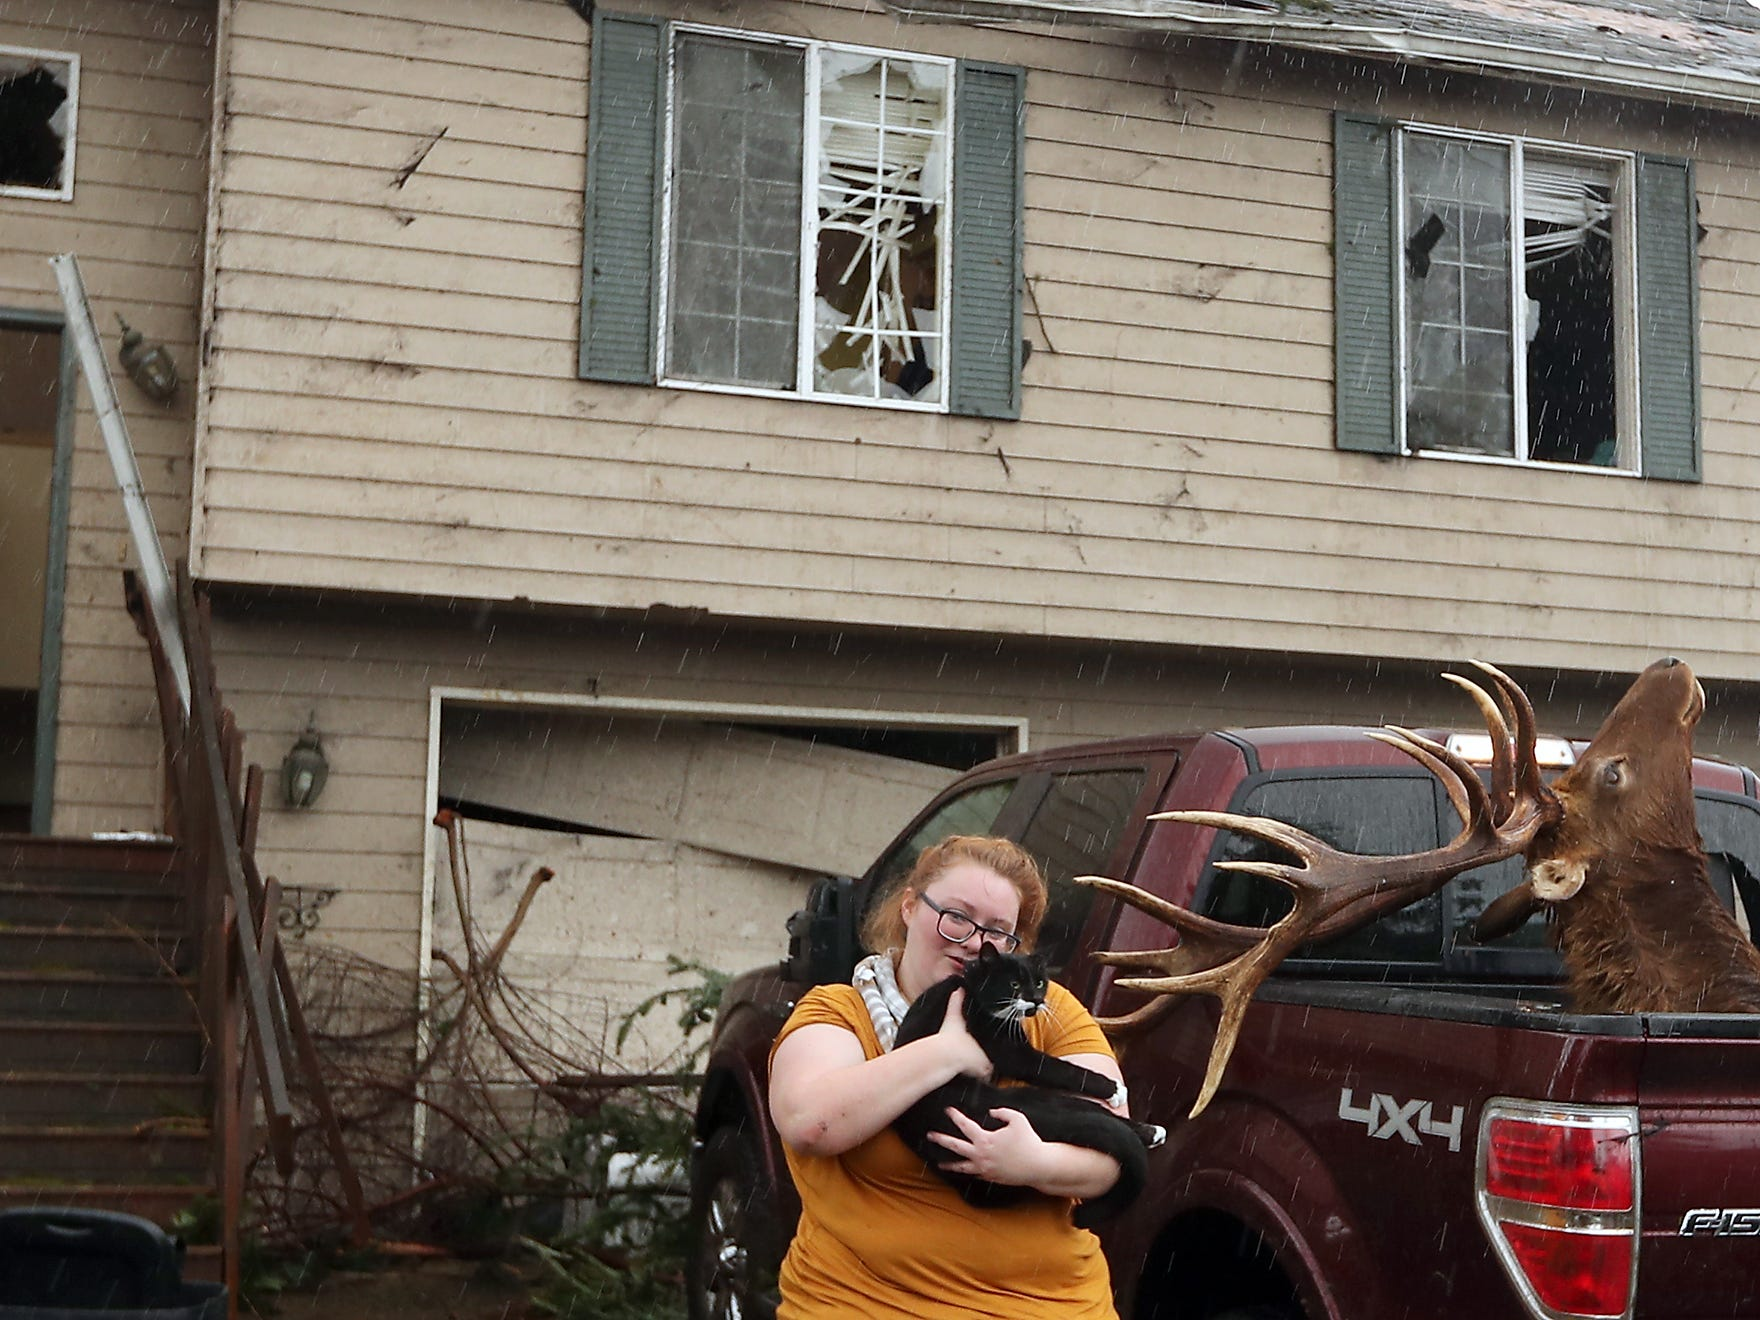 Morgan Crain hurries through the rain as she snuggles her cat Loki after finding him scared and hiding under one of the beds of her family's heavily damaged home in Port Orchard on Wednesday, December 19, 2018. The Crain's are still looking for one of their cats still missing after the storm.